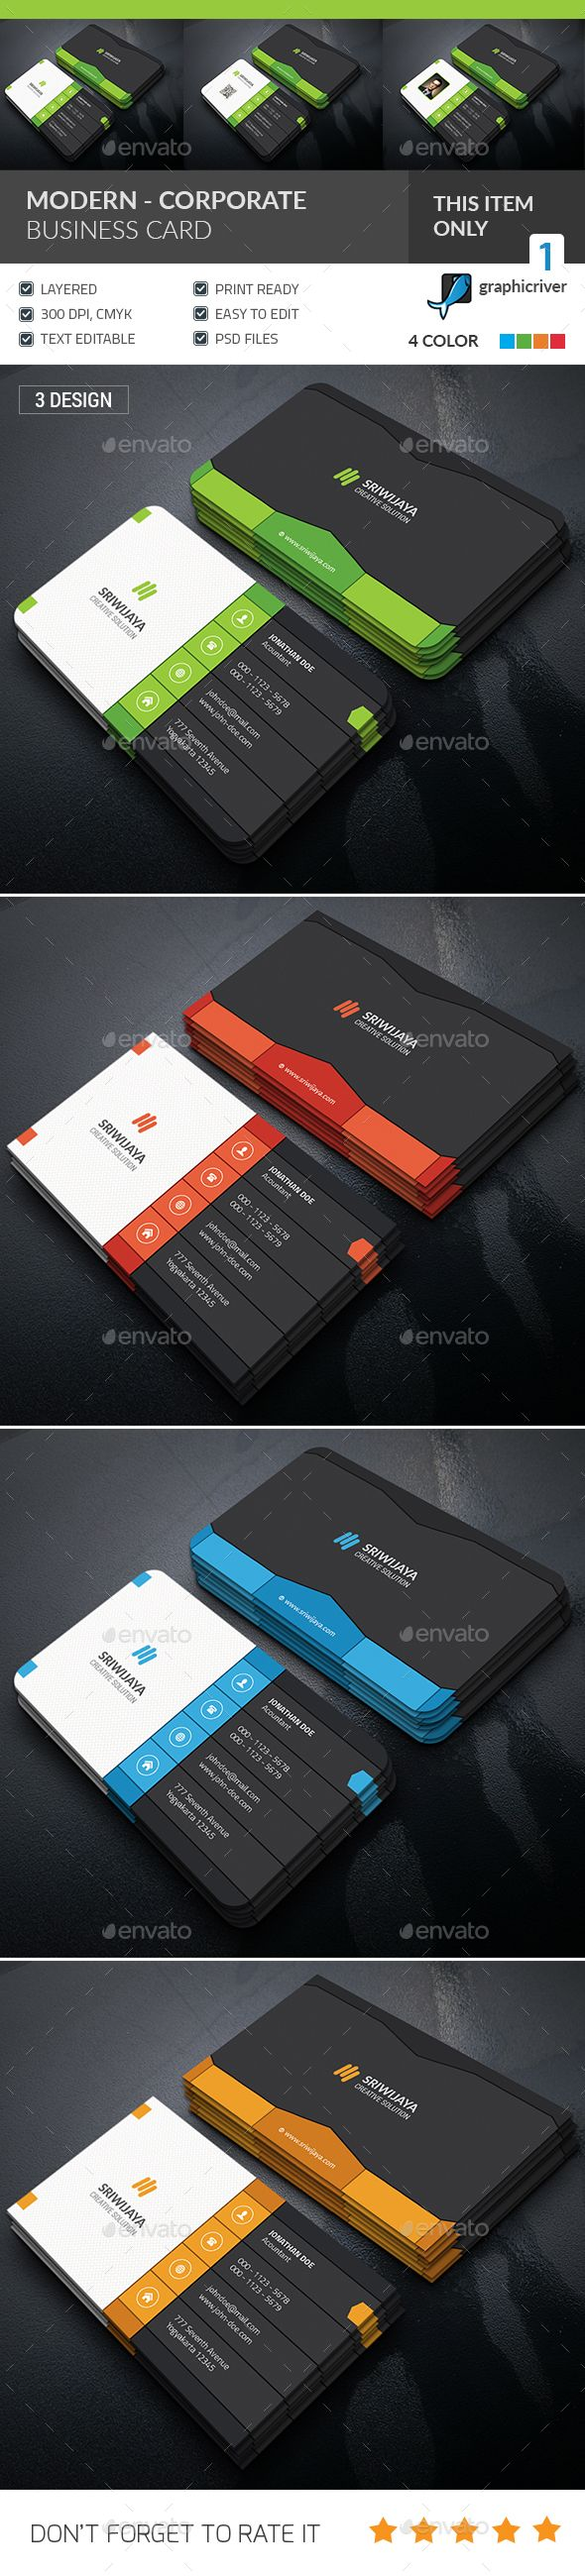 Best 25 round business cards ideas on pinterest business cards modern corporate business card magicingreecefo Gallery